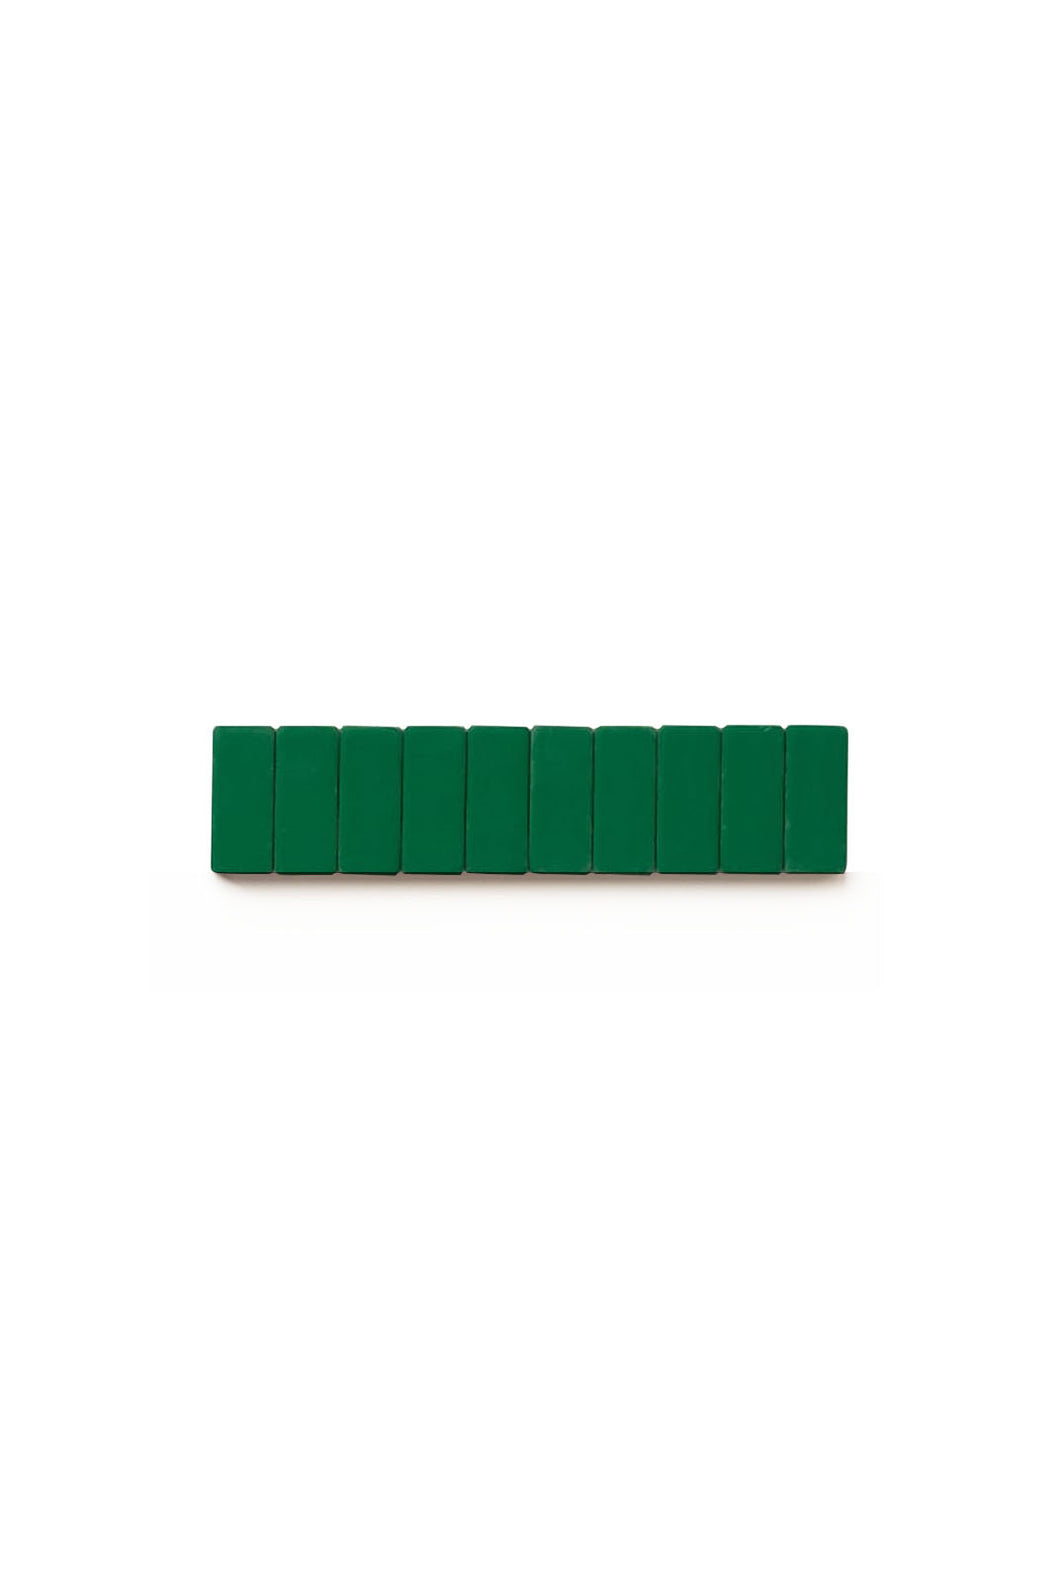 Palomino Blackwing - Pencil Replacement Erasers - Pack of 10 - Green